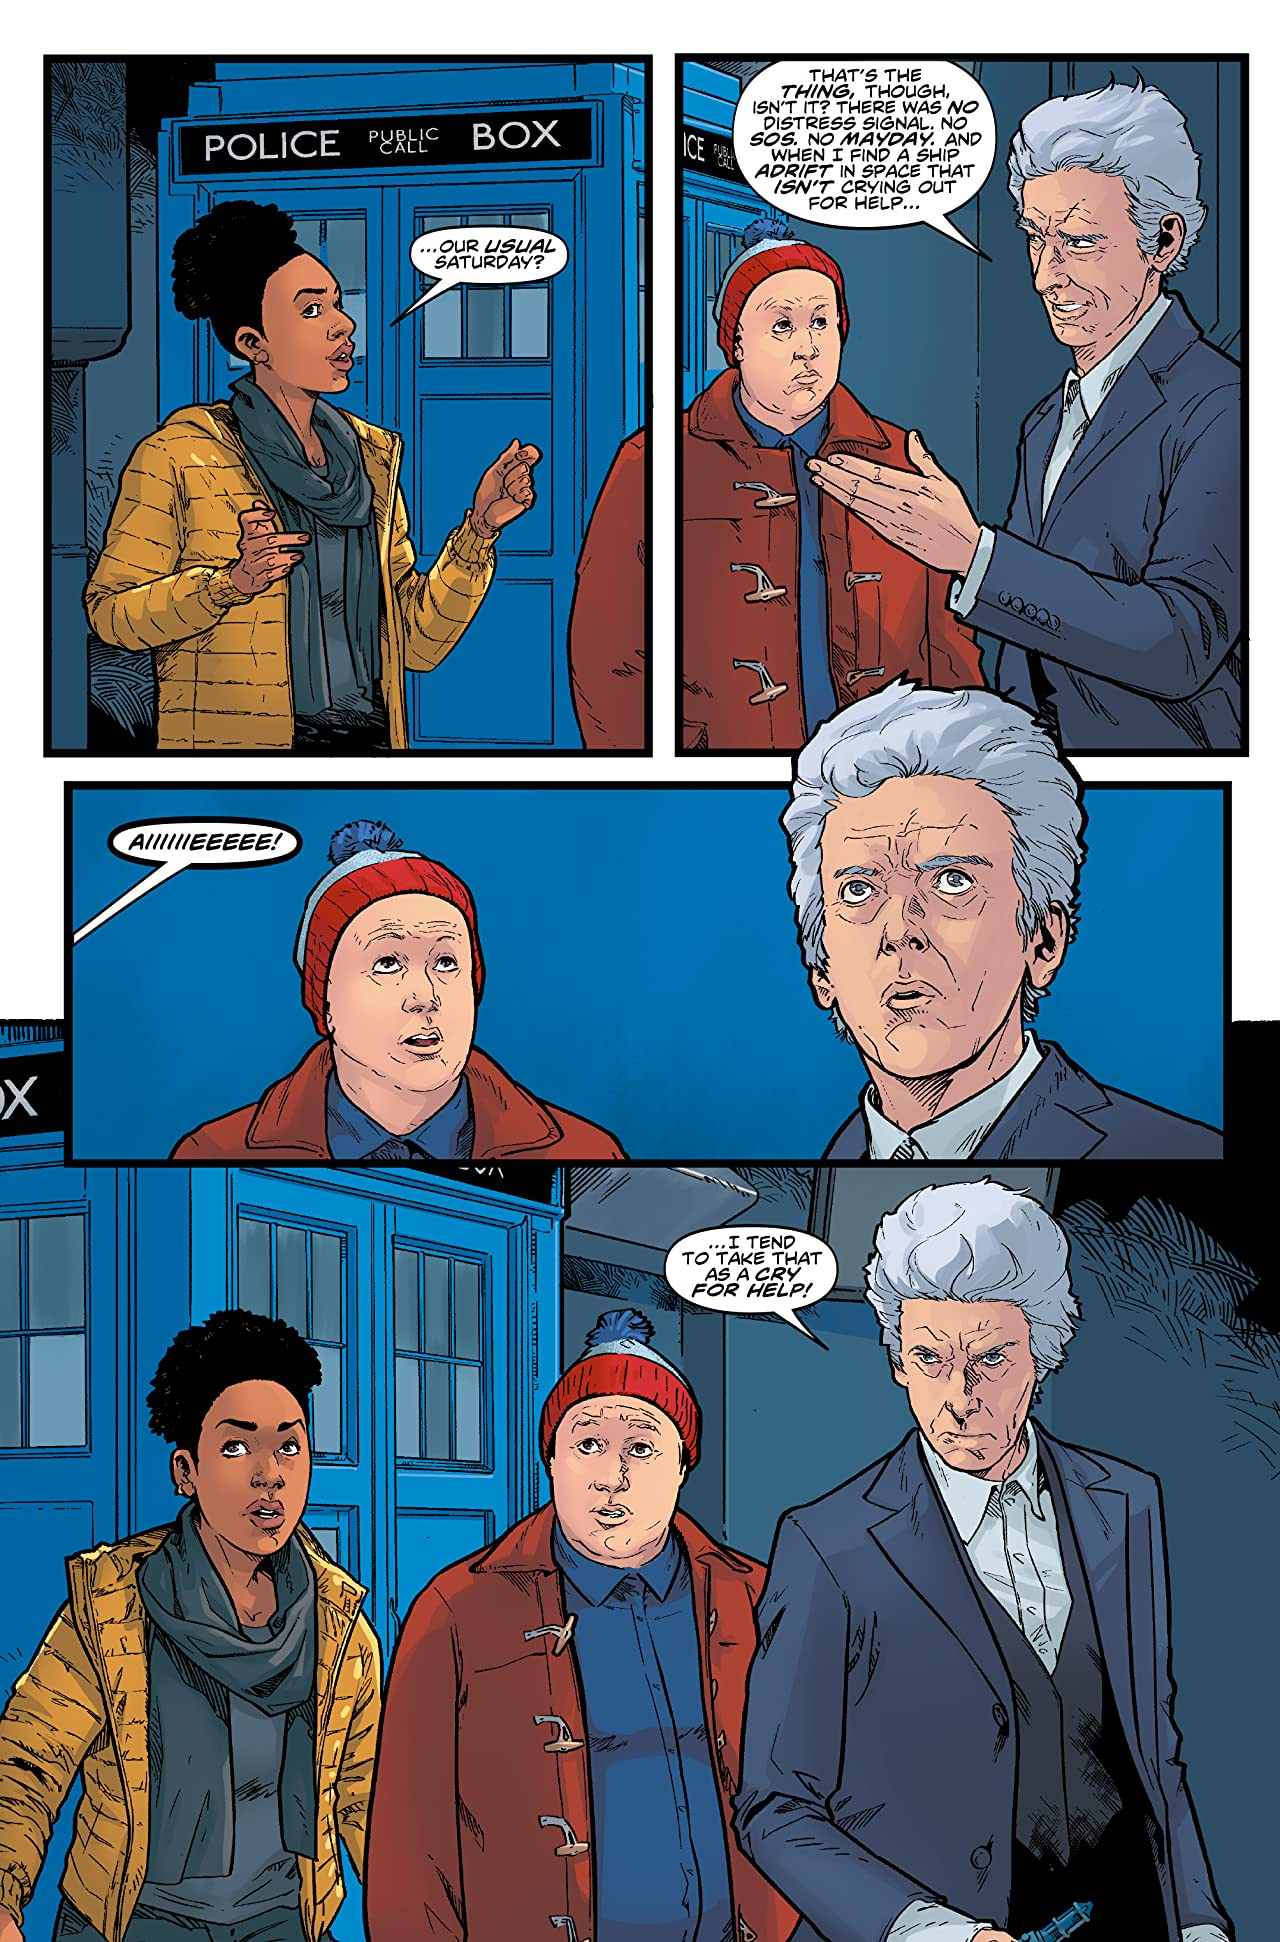 Doctor Who: The Twelfth Doctor - Time Trials Vol. 3: Confusion of Angels